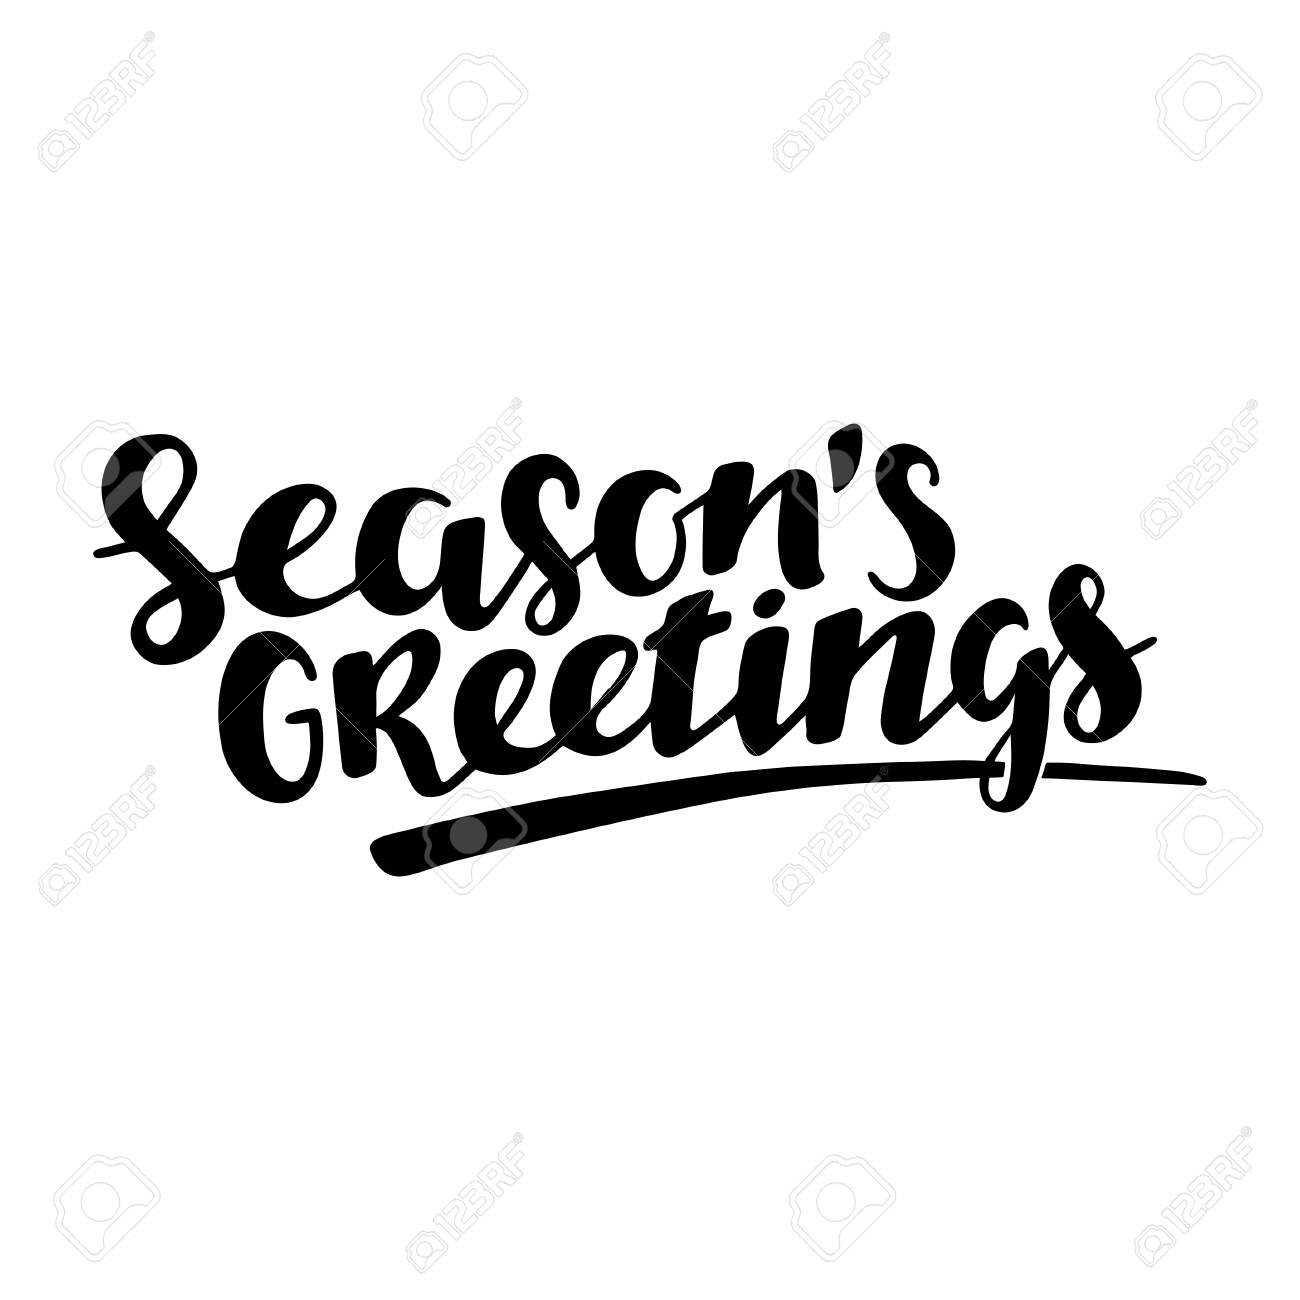 Season Greeting Quote Vector Text For Design Greeting Cards